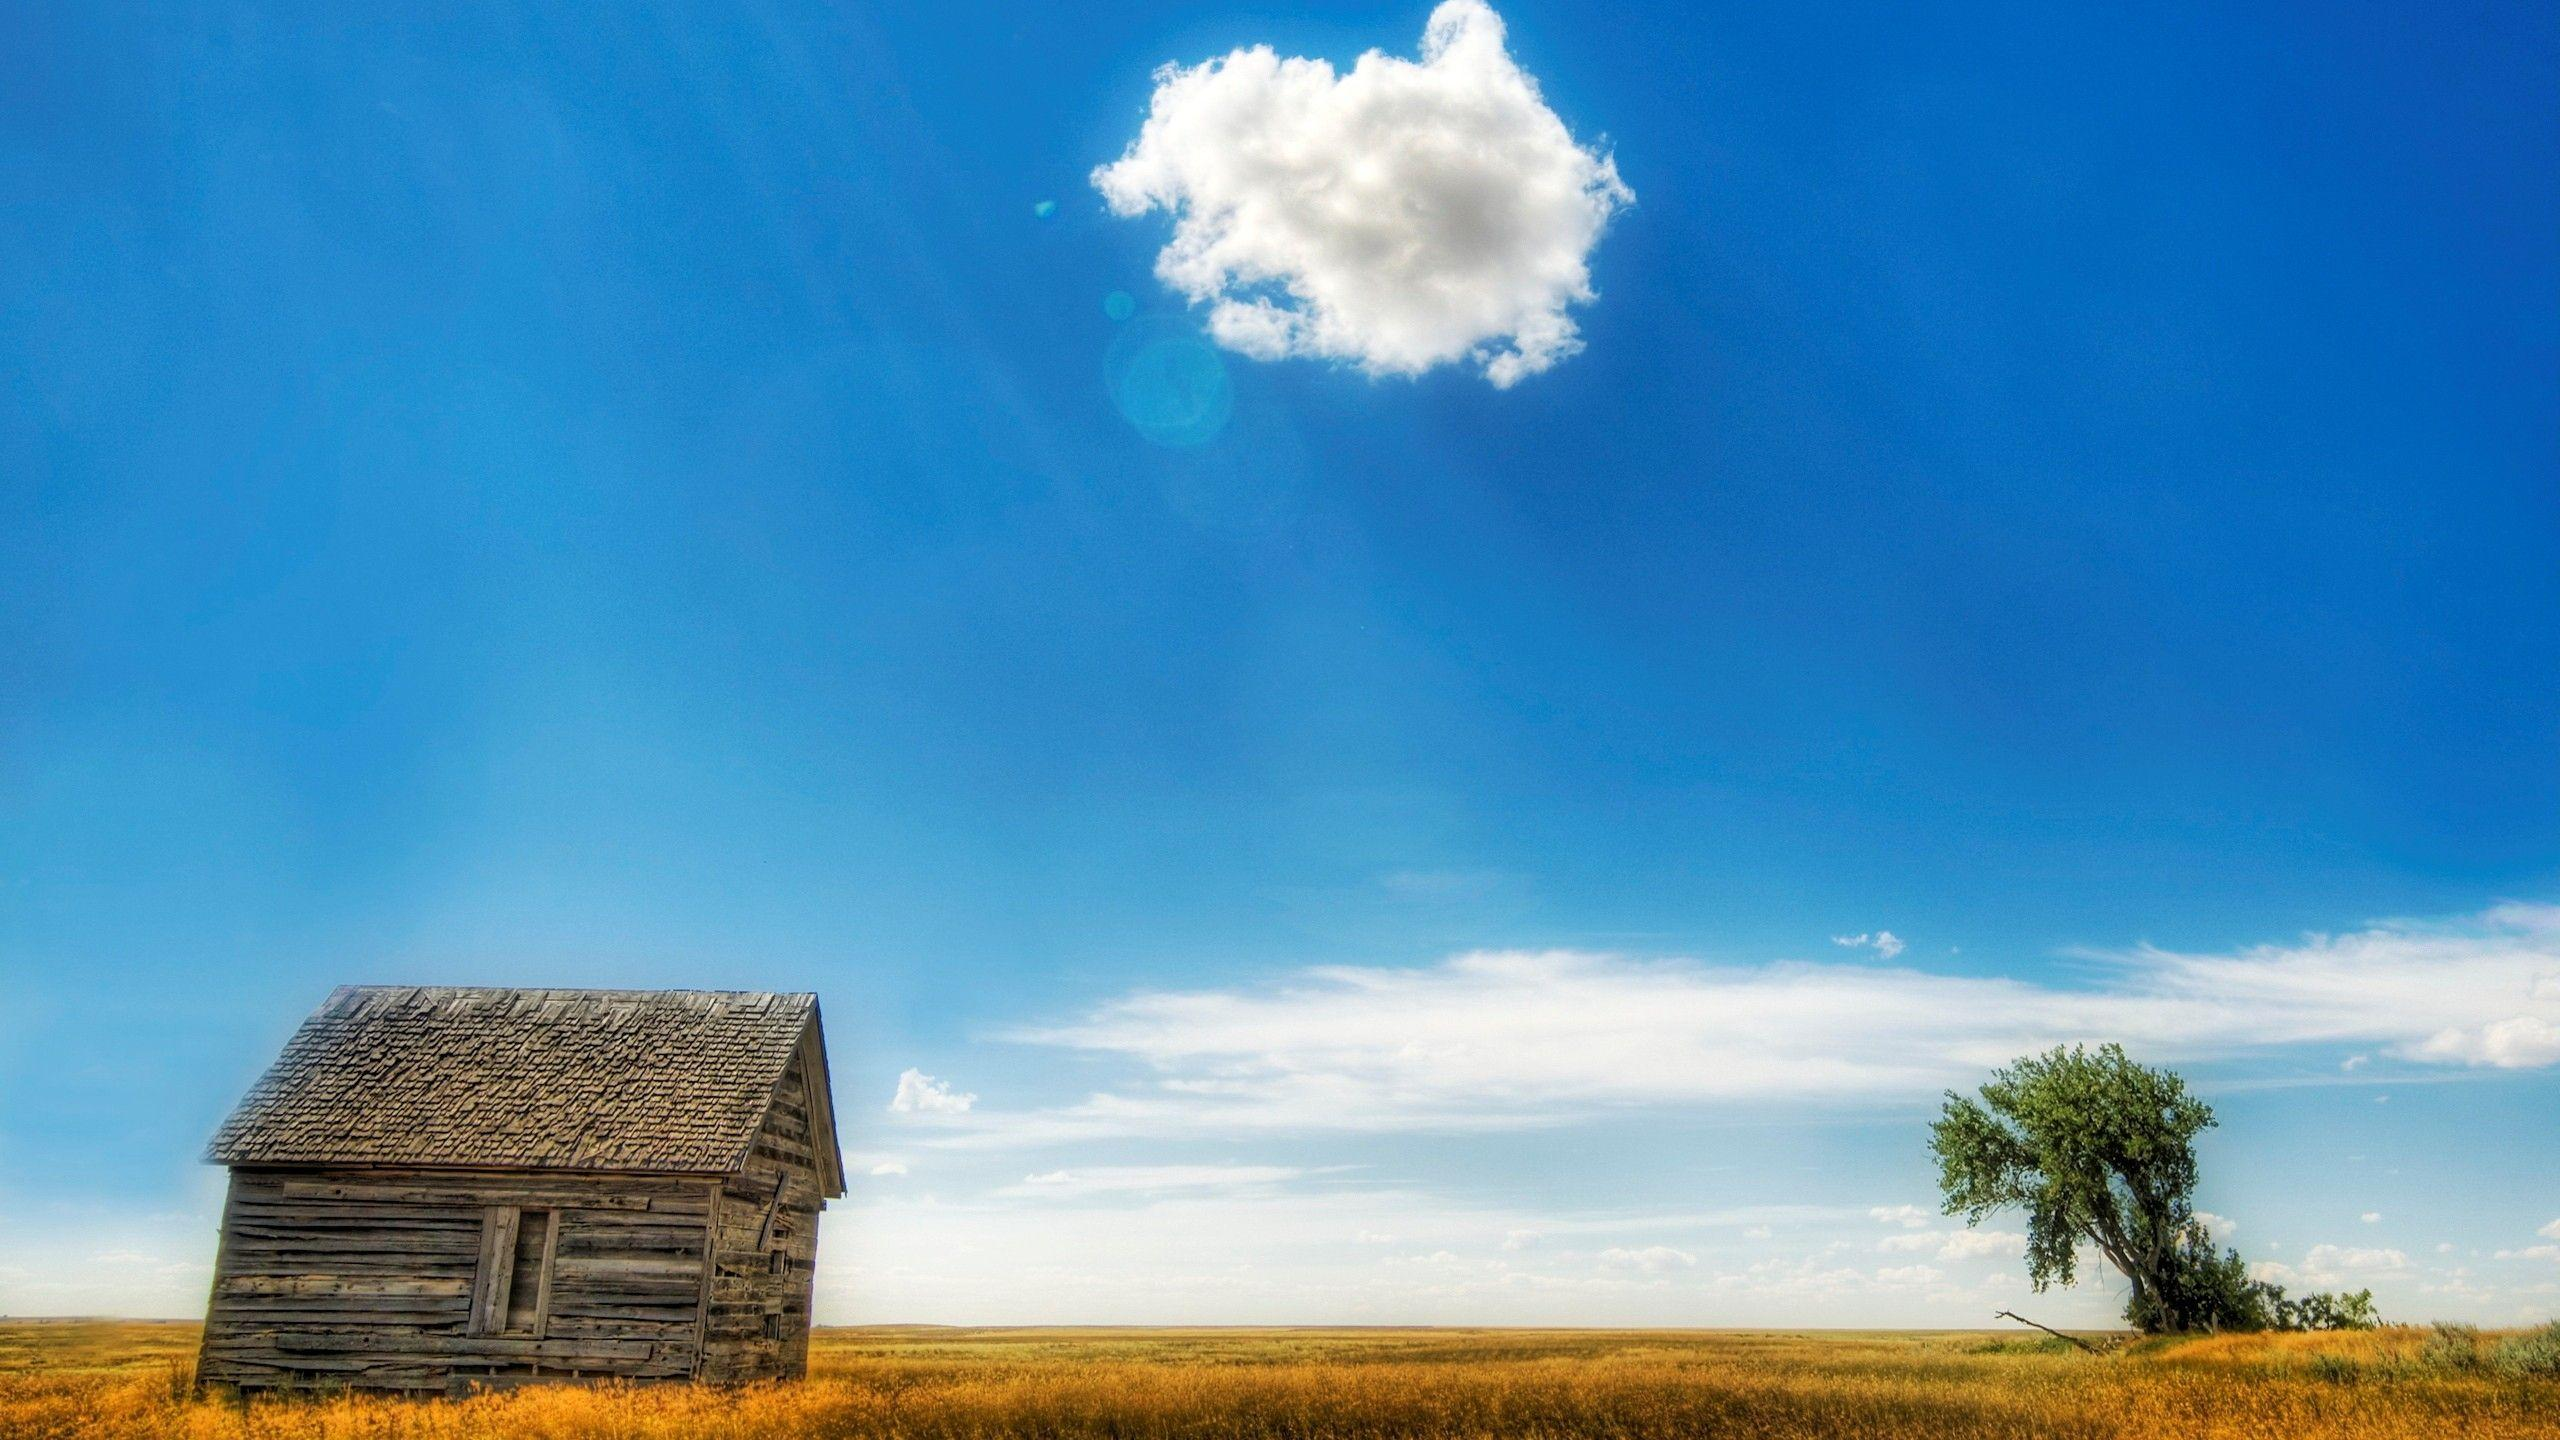 Little House on the Prairie Mac Wallpaper Download | Free Mac ...